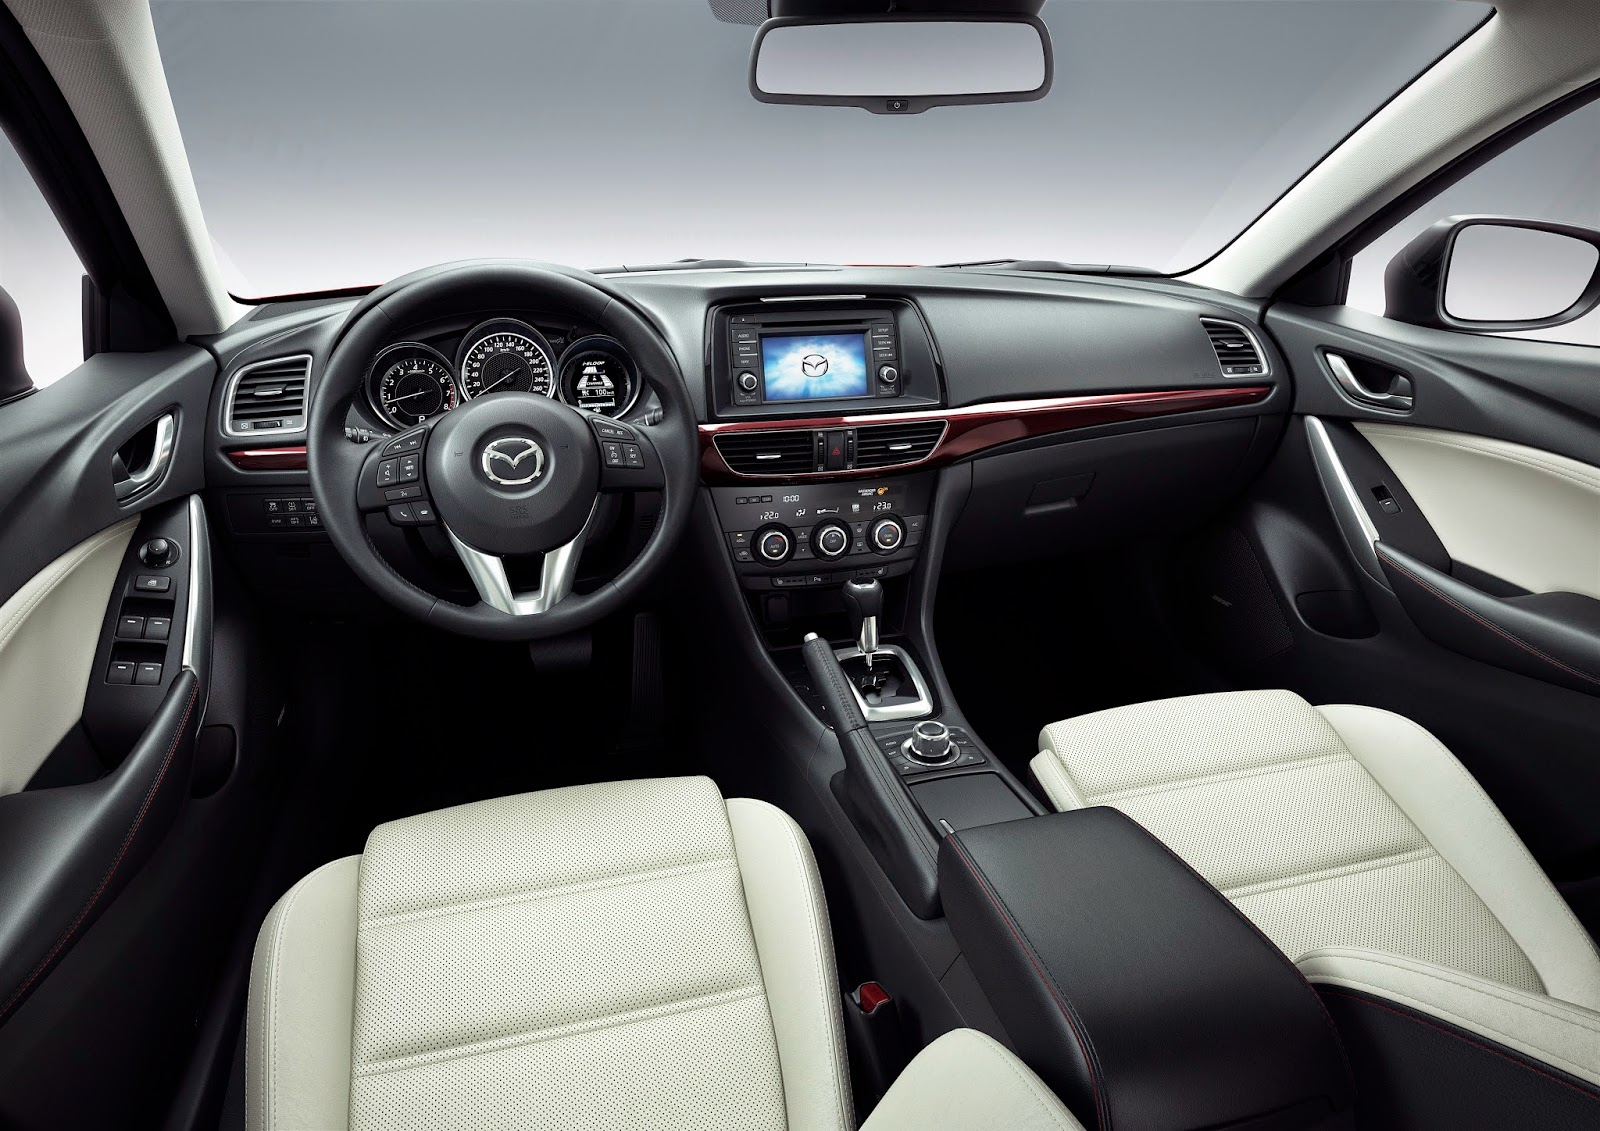 Interior view of 2015 Mazda 6